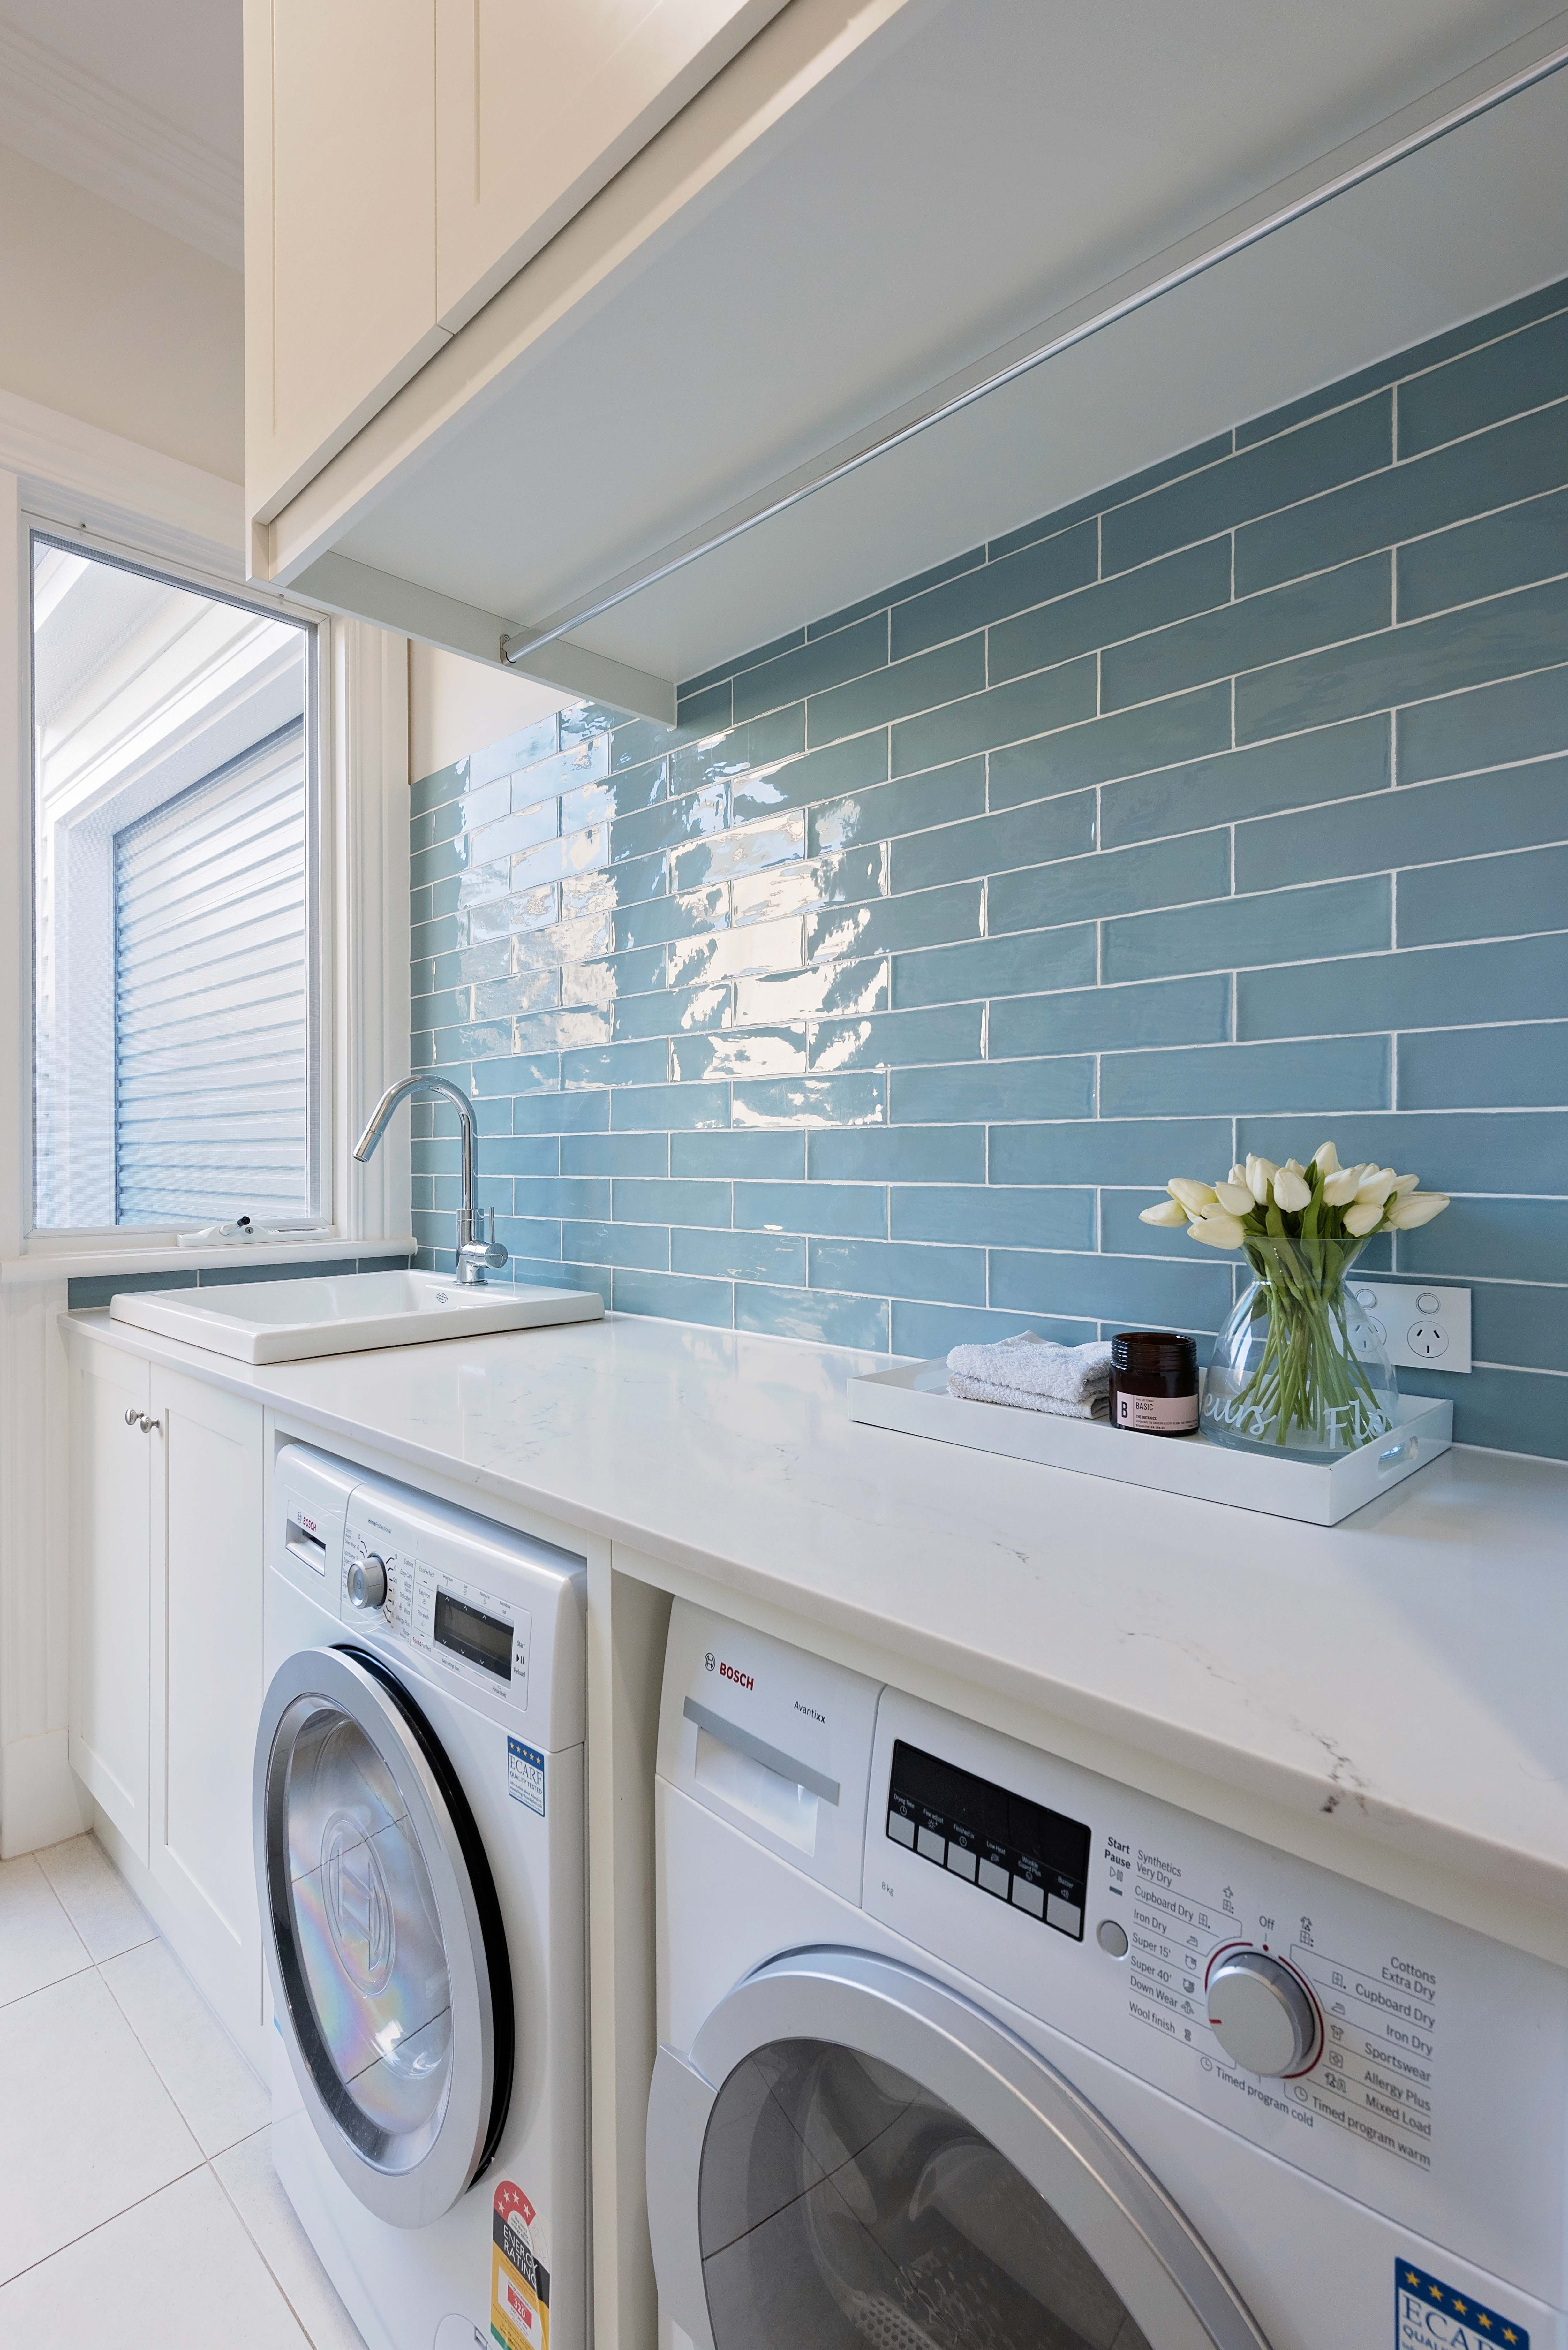 14 Best Laundry Room Backsplash Ideas - fancydecors  White